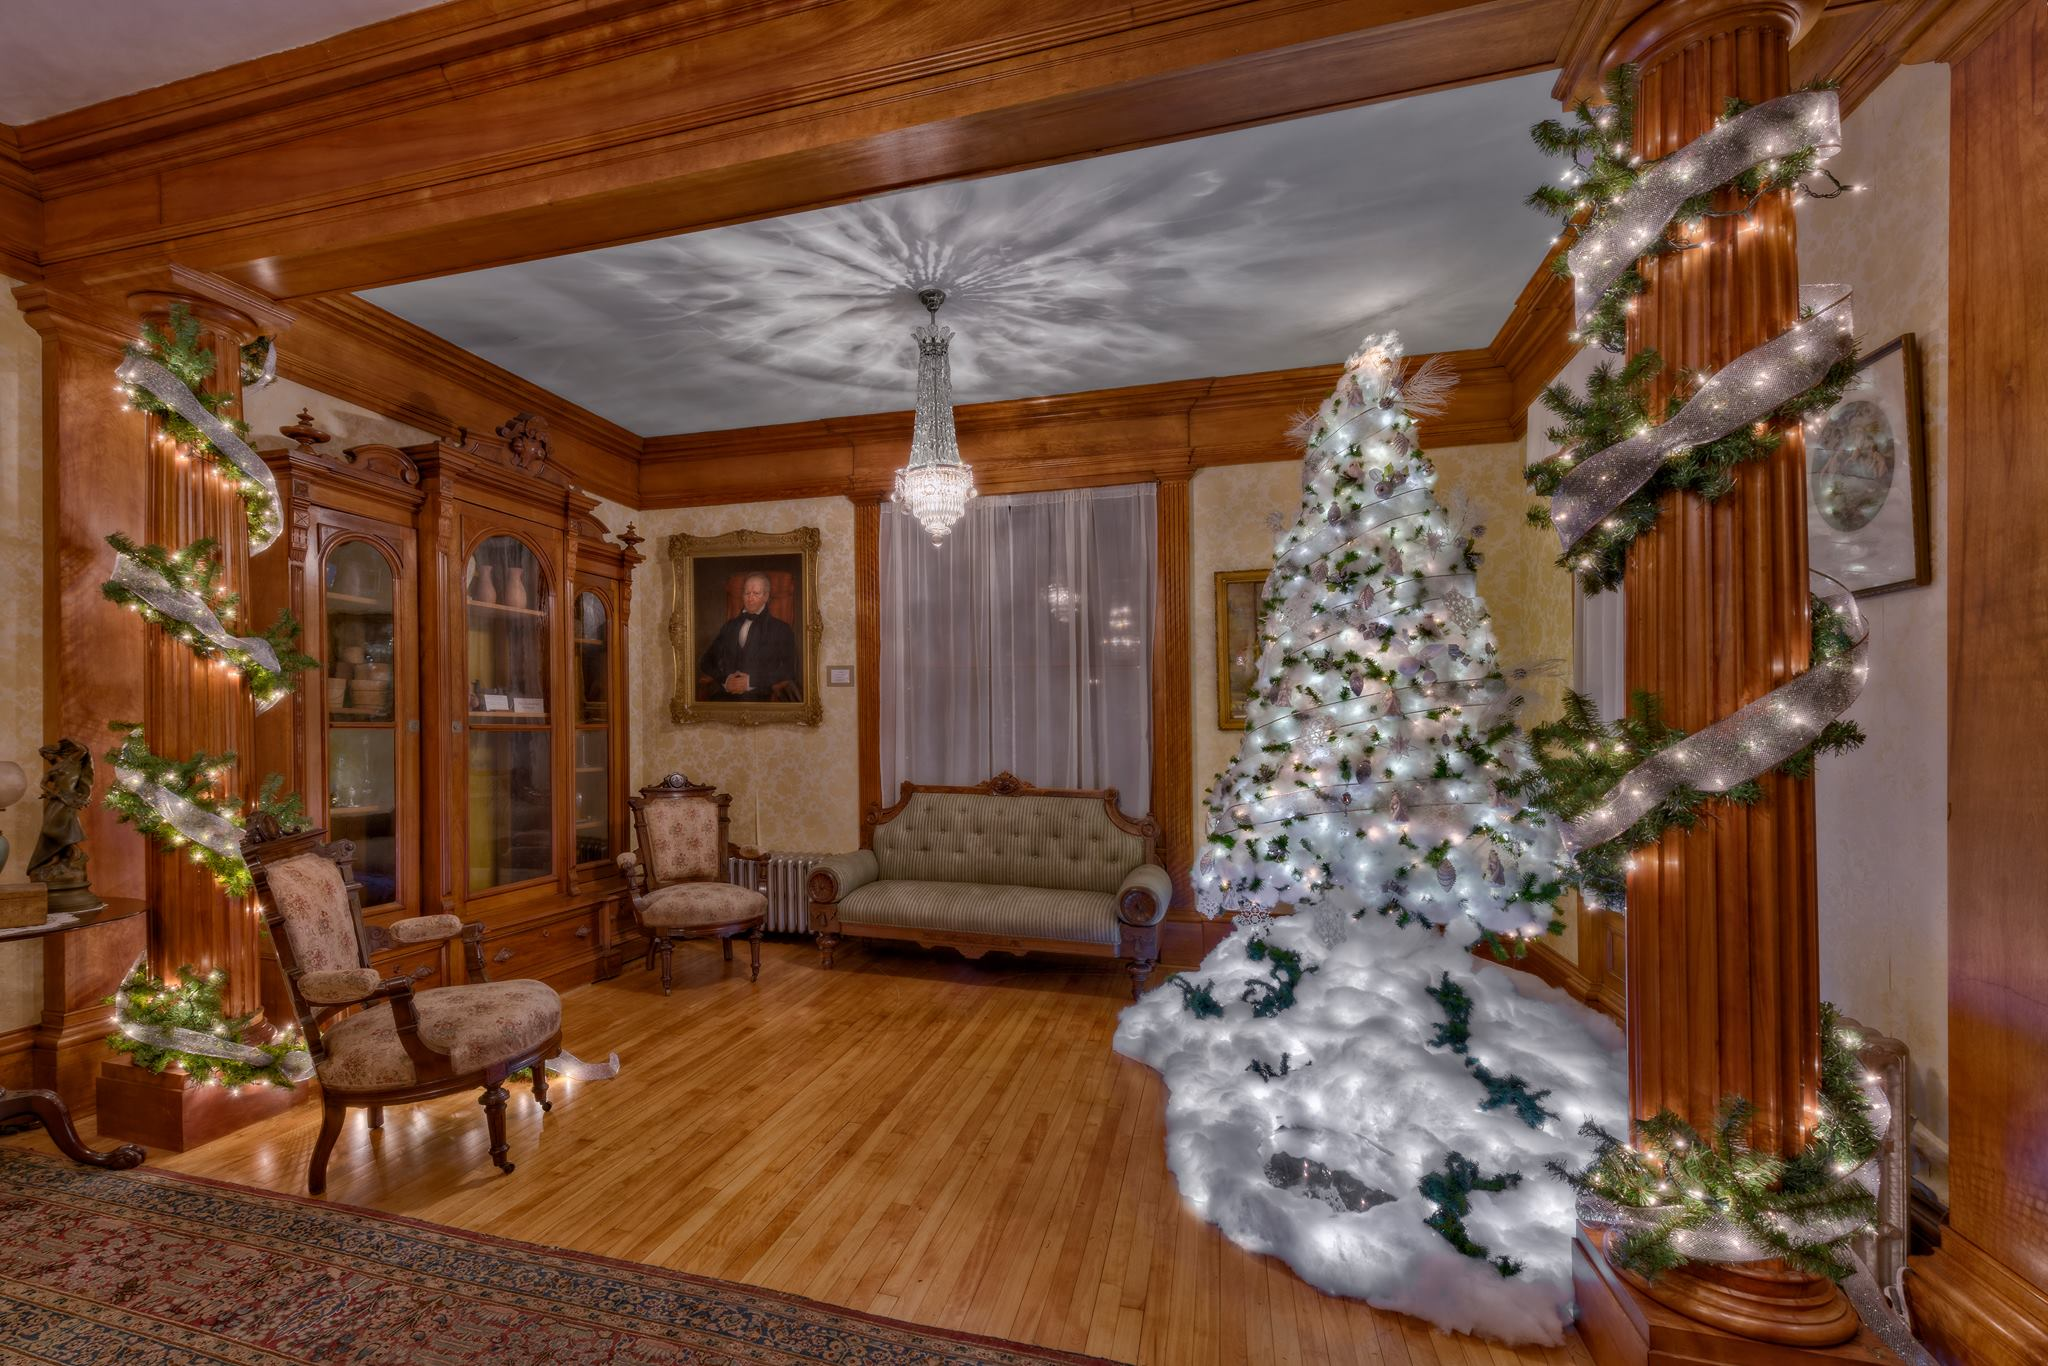 2019 Holiday House Tour in Winchendon, MA